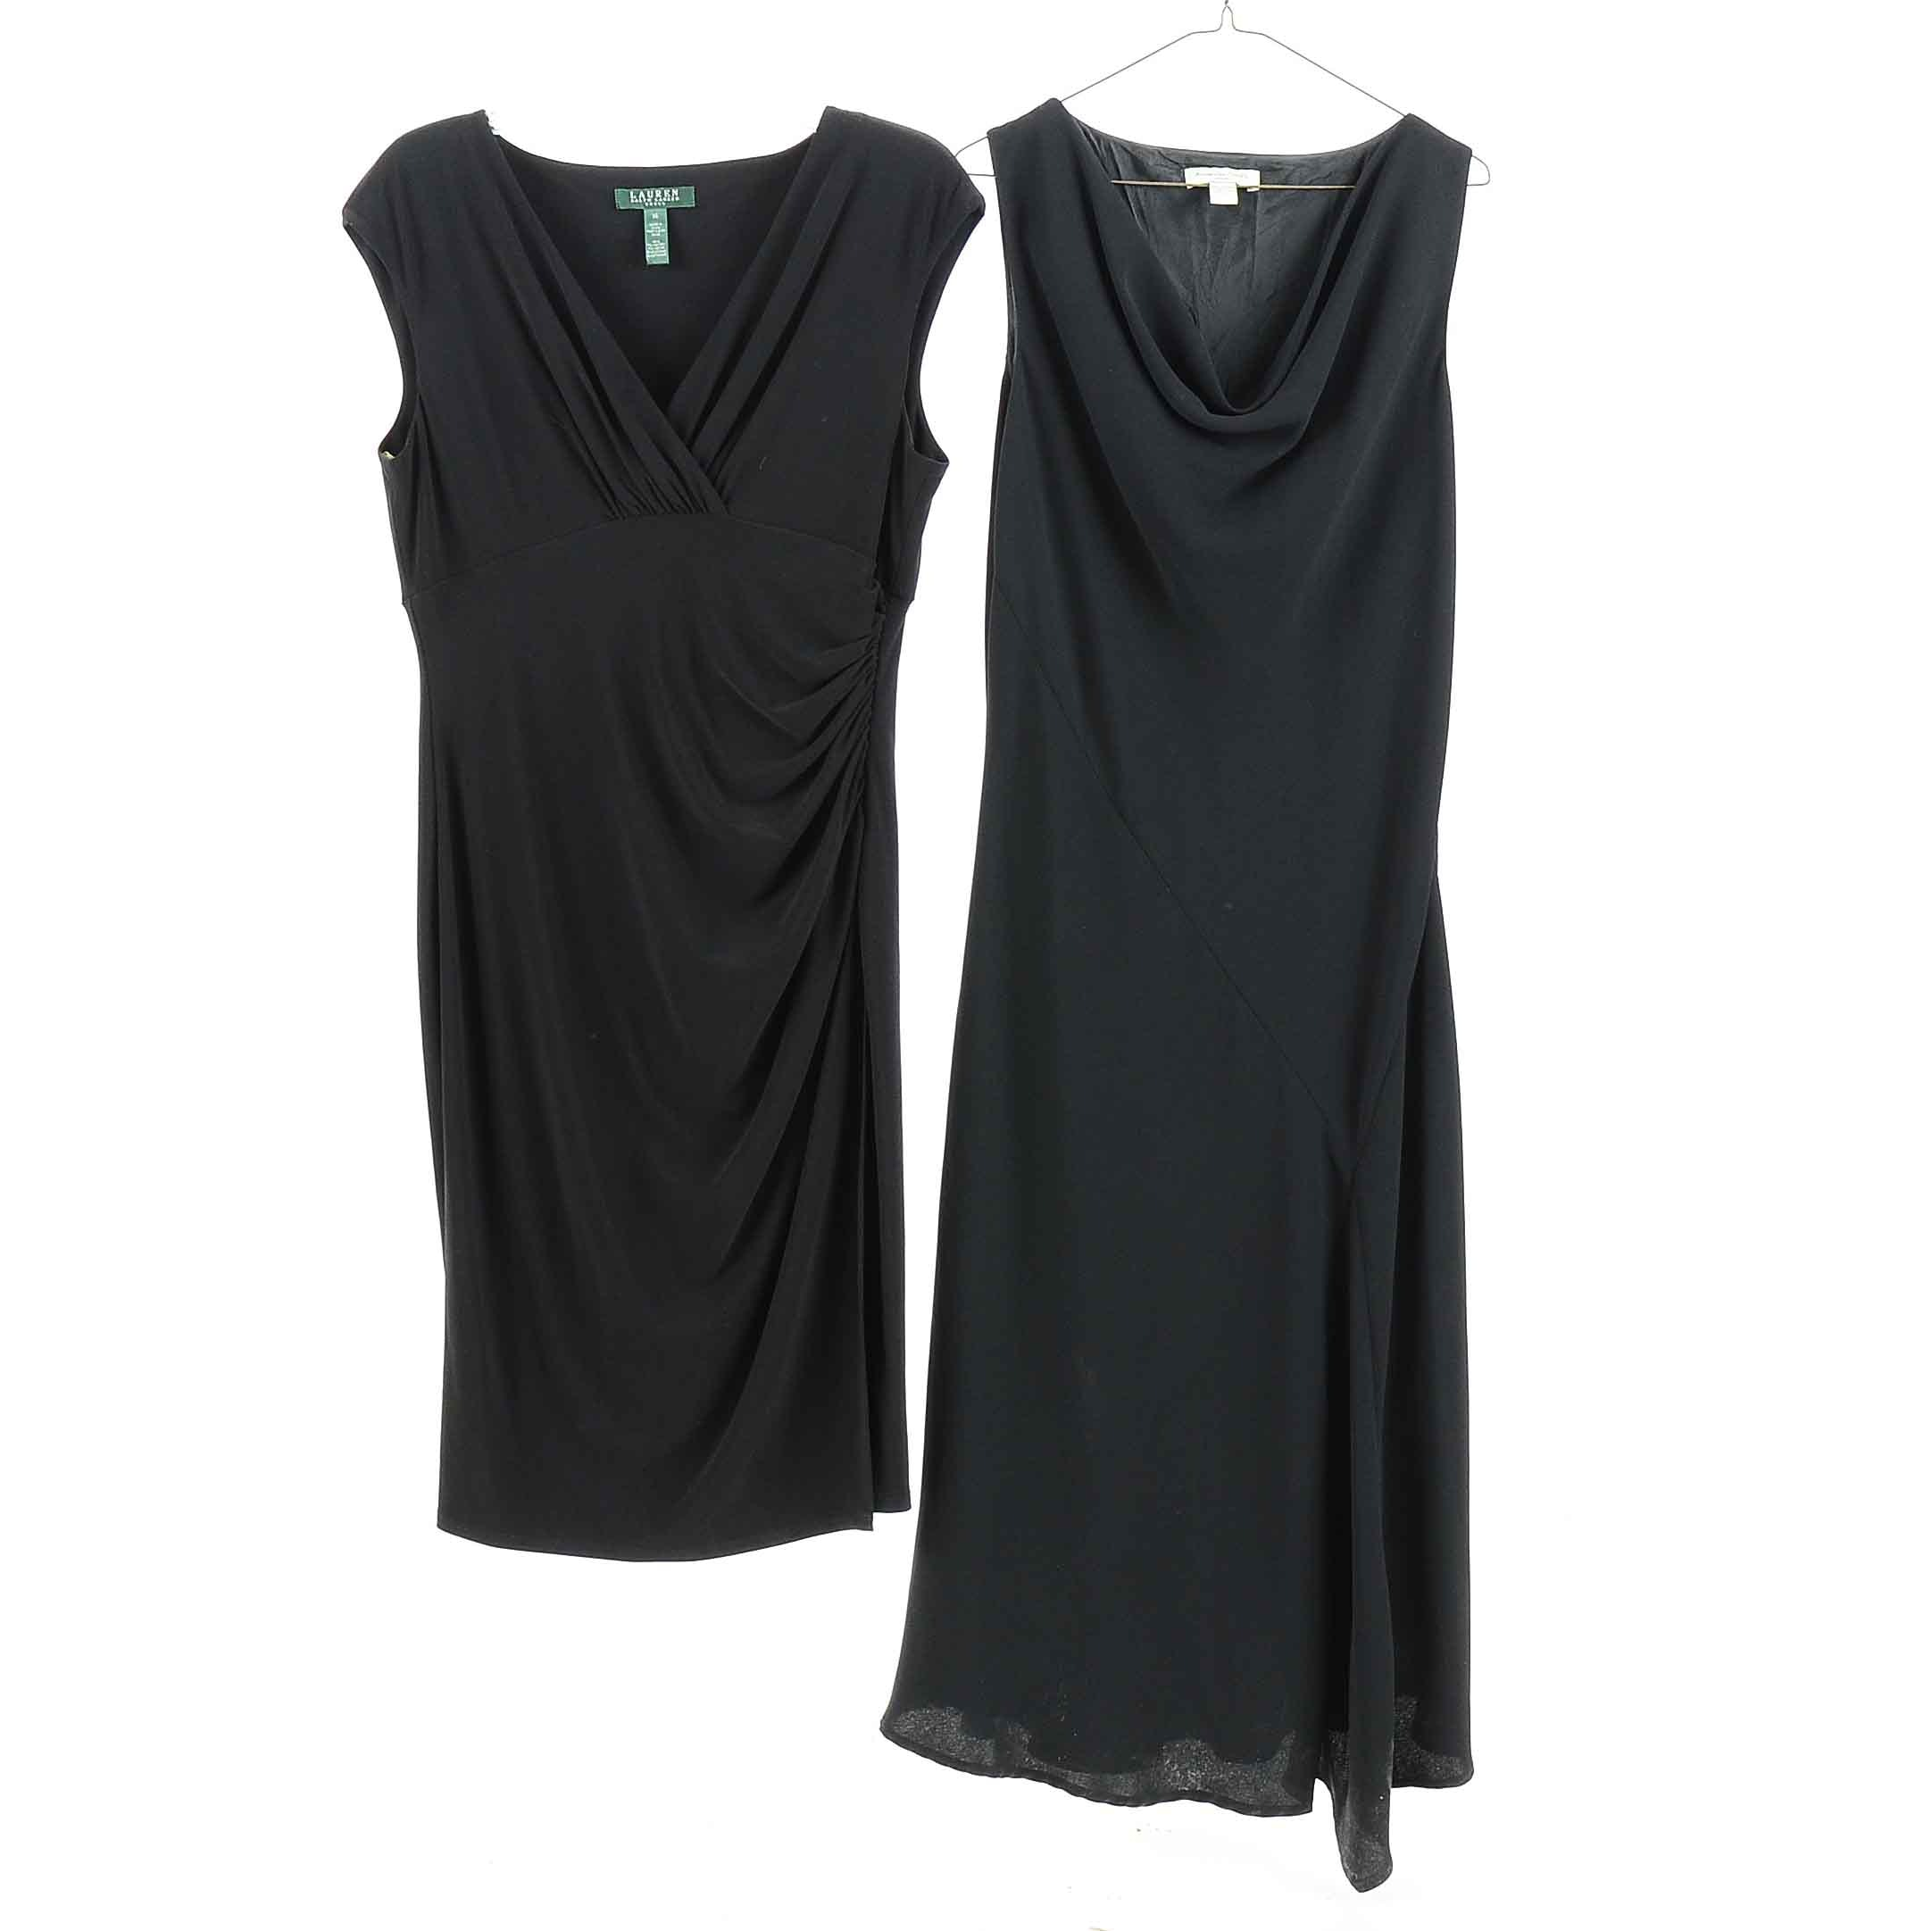 Lauren by Ralph Lauren and Amanda Smith Sleeveless Draped Black Dresses